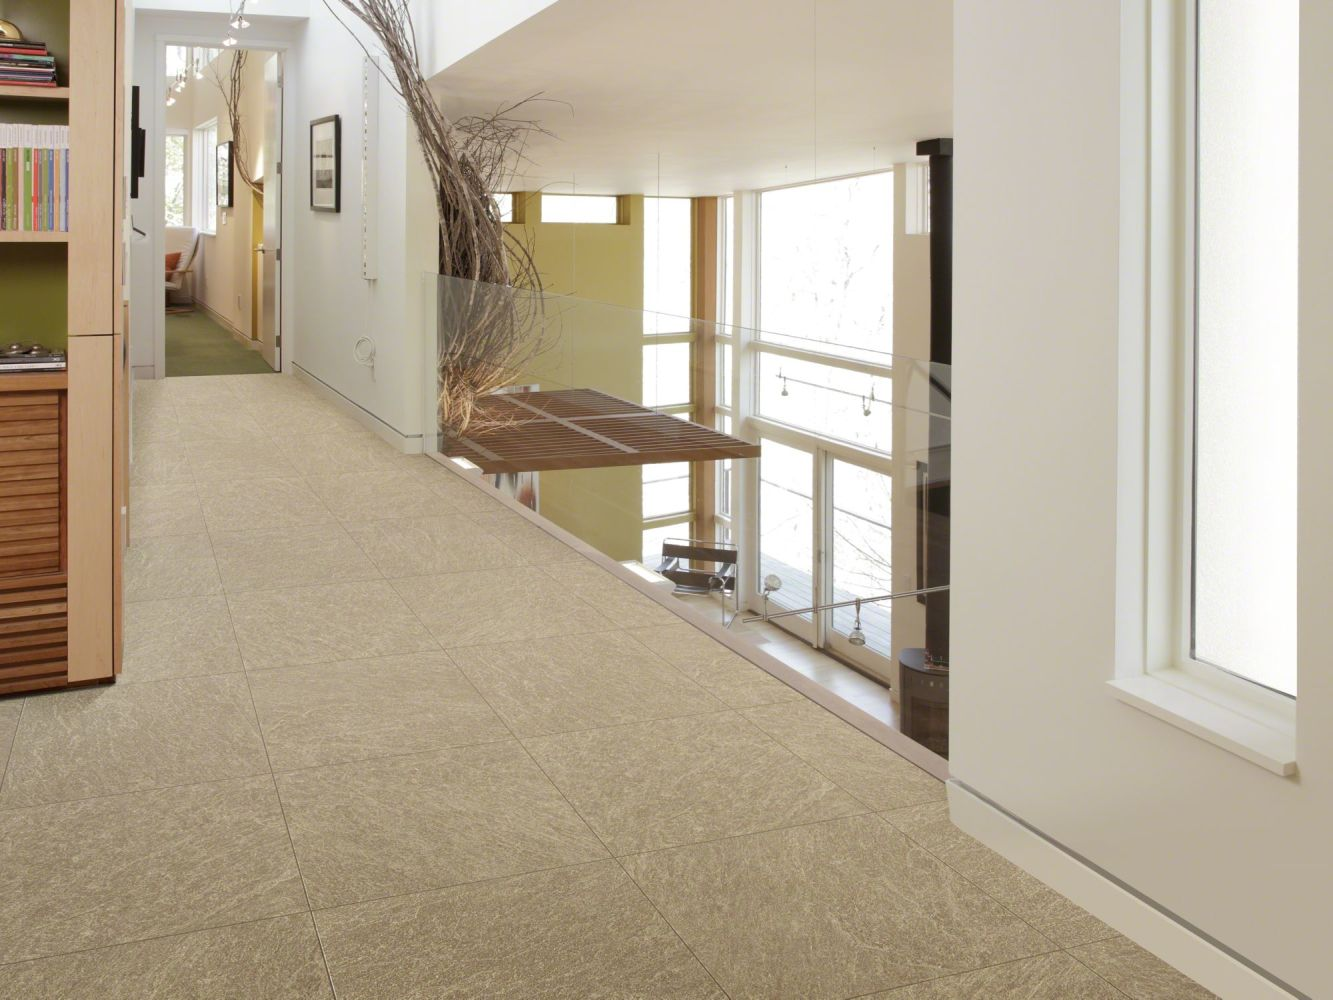 Shaw Floors Resilient Property Solutions Pro 12 Annapolis 00122_VG062